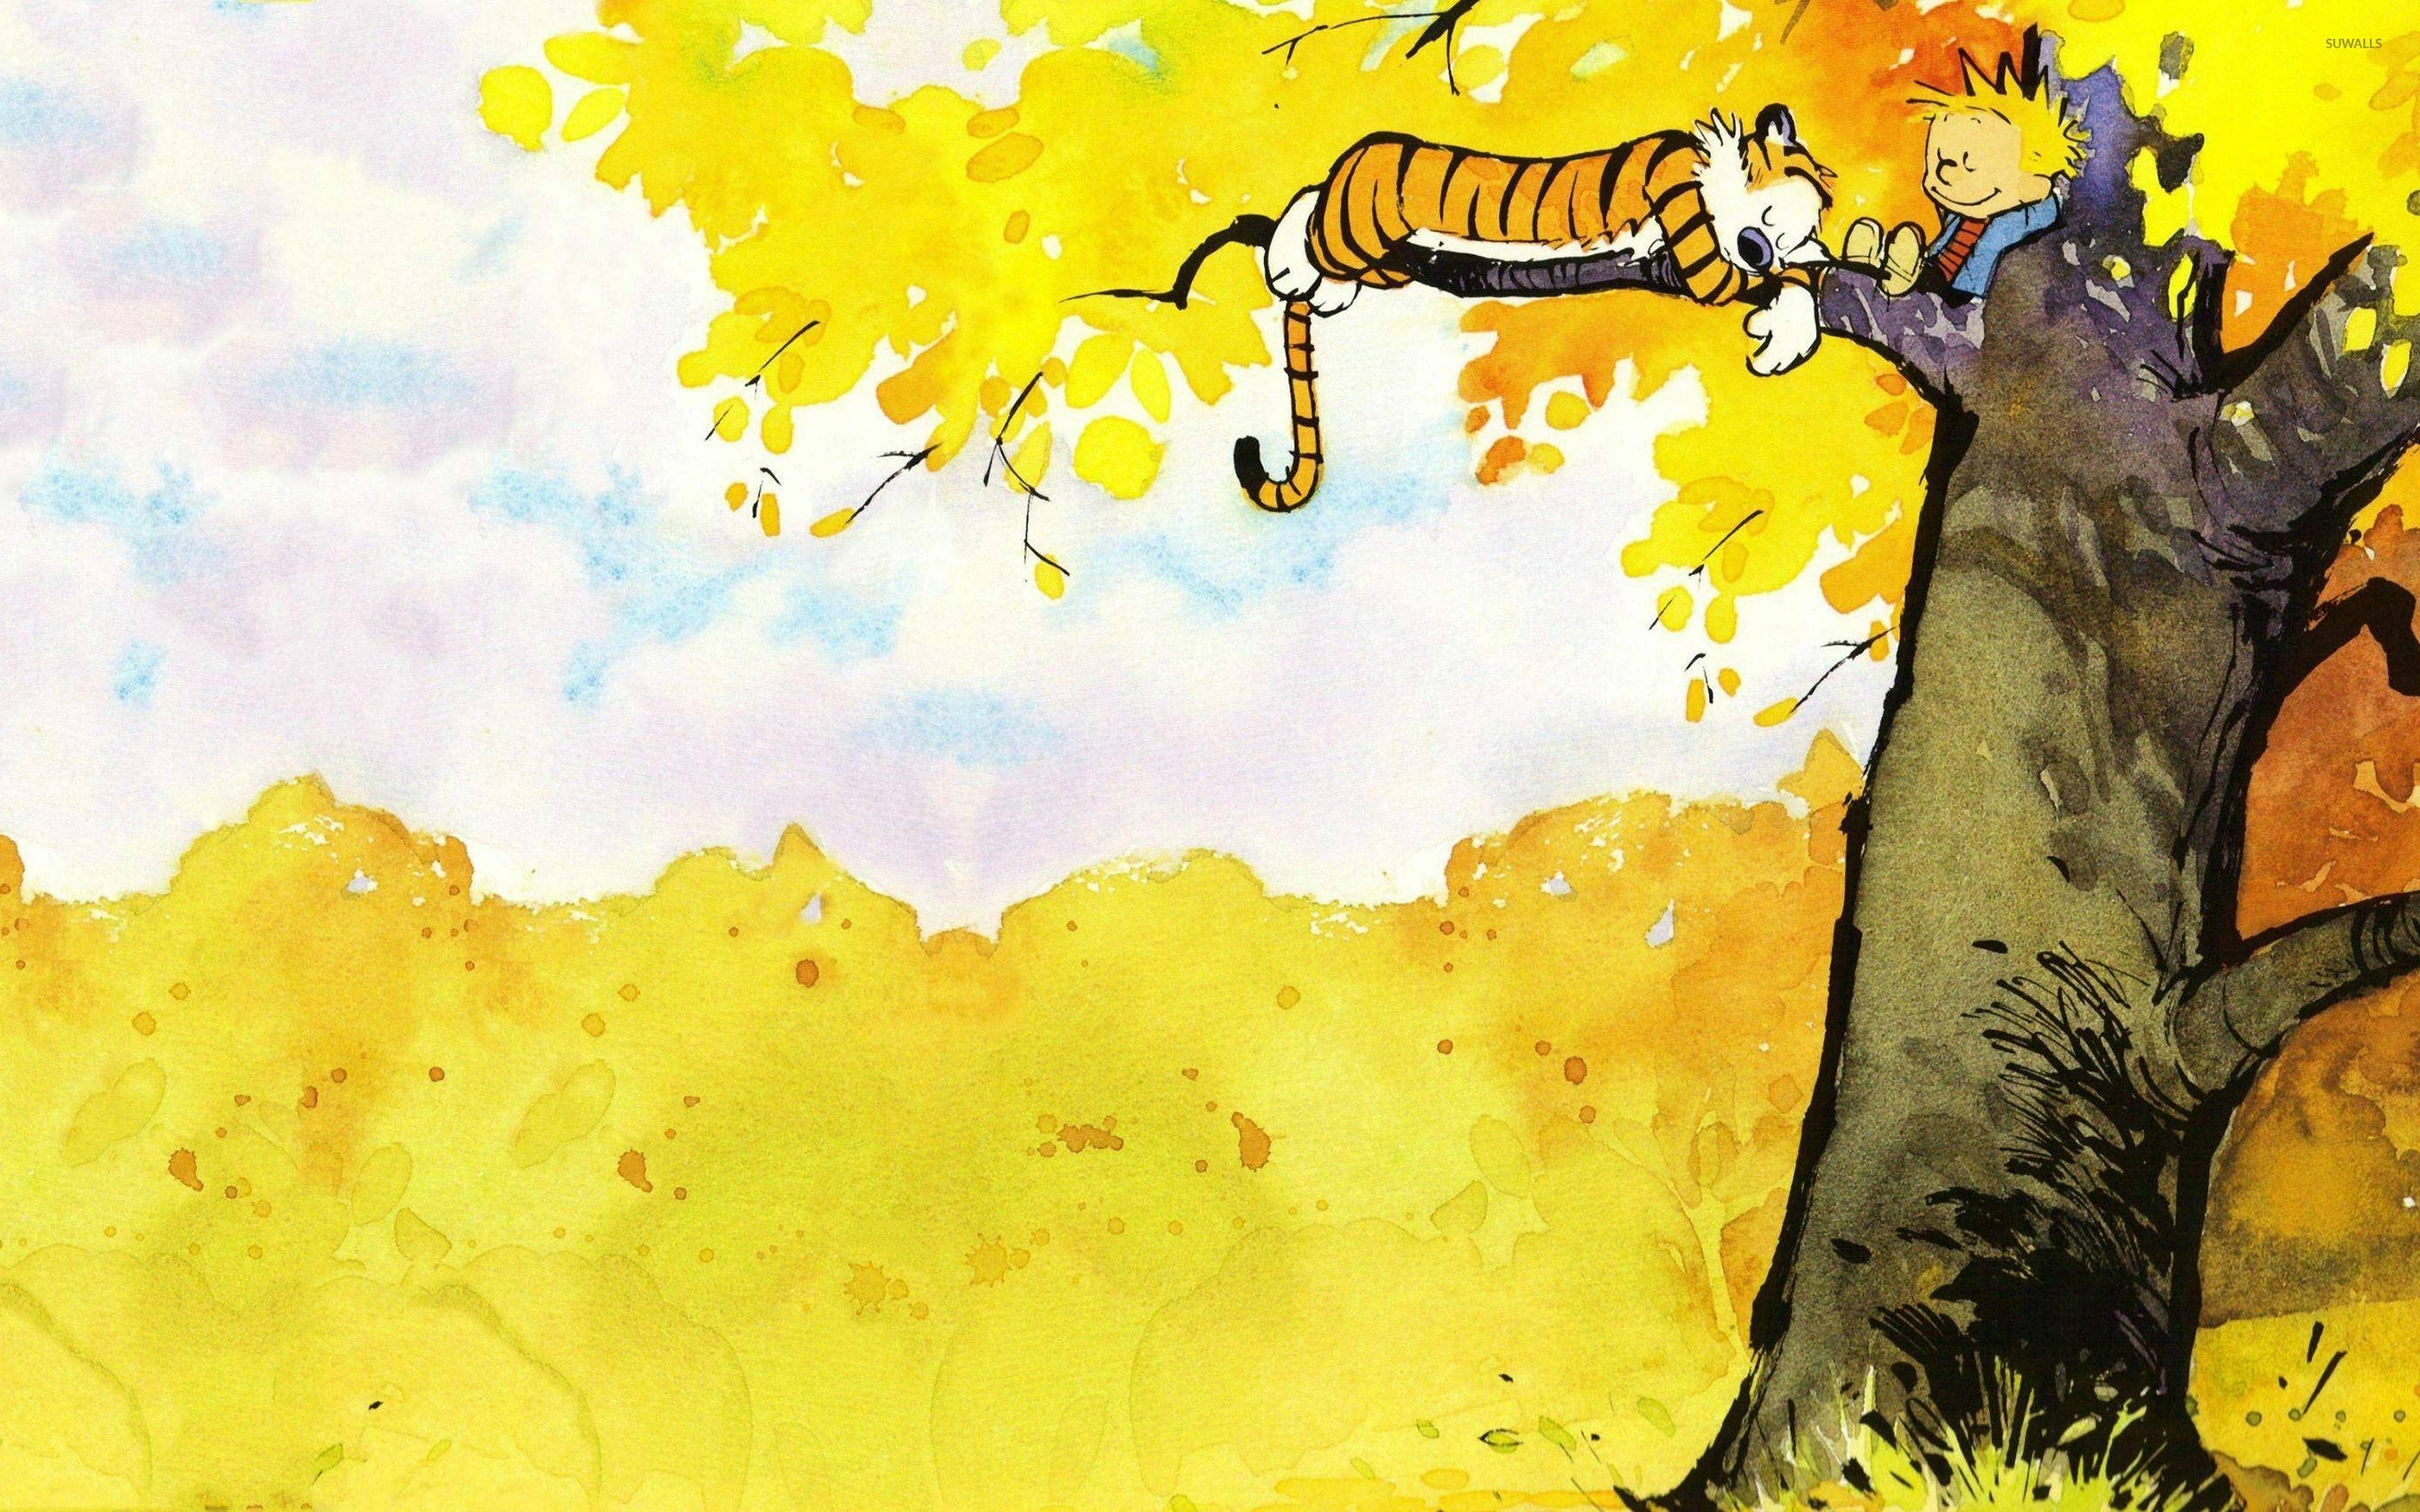 calvin and hobbes [11] wallpaper - comic wallpapers - #41181